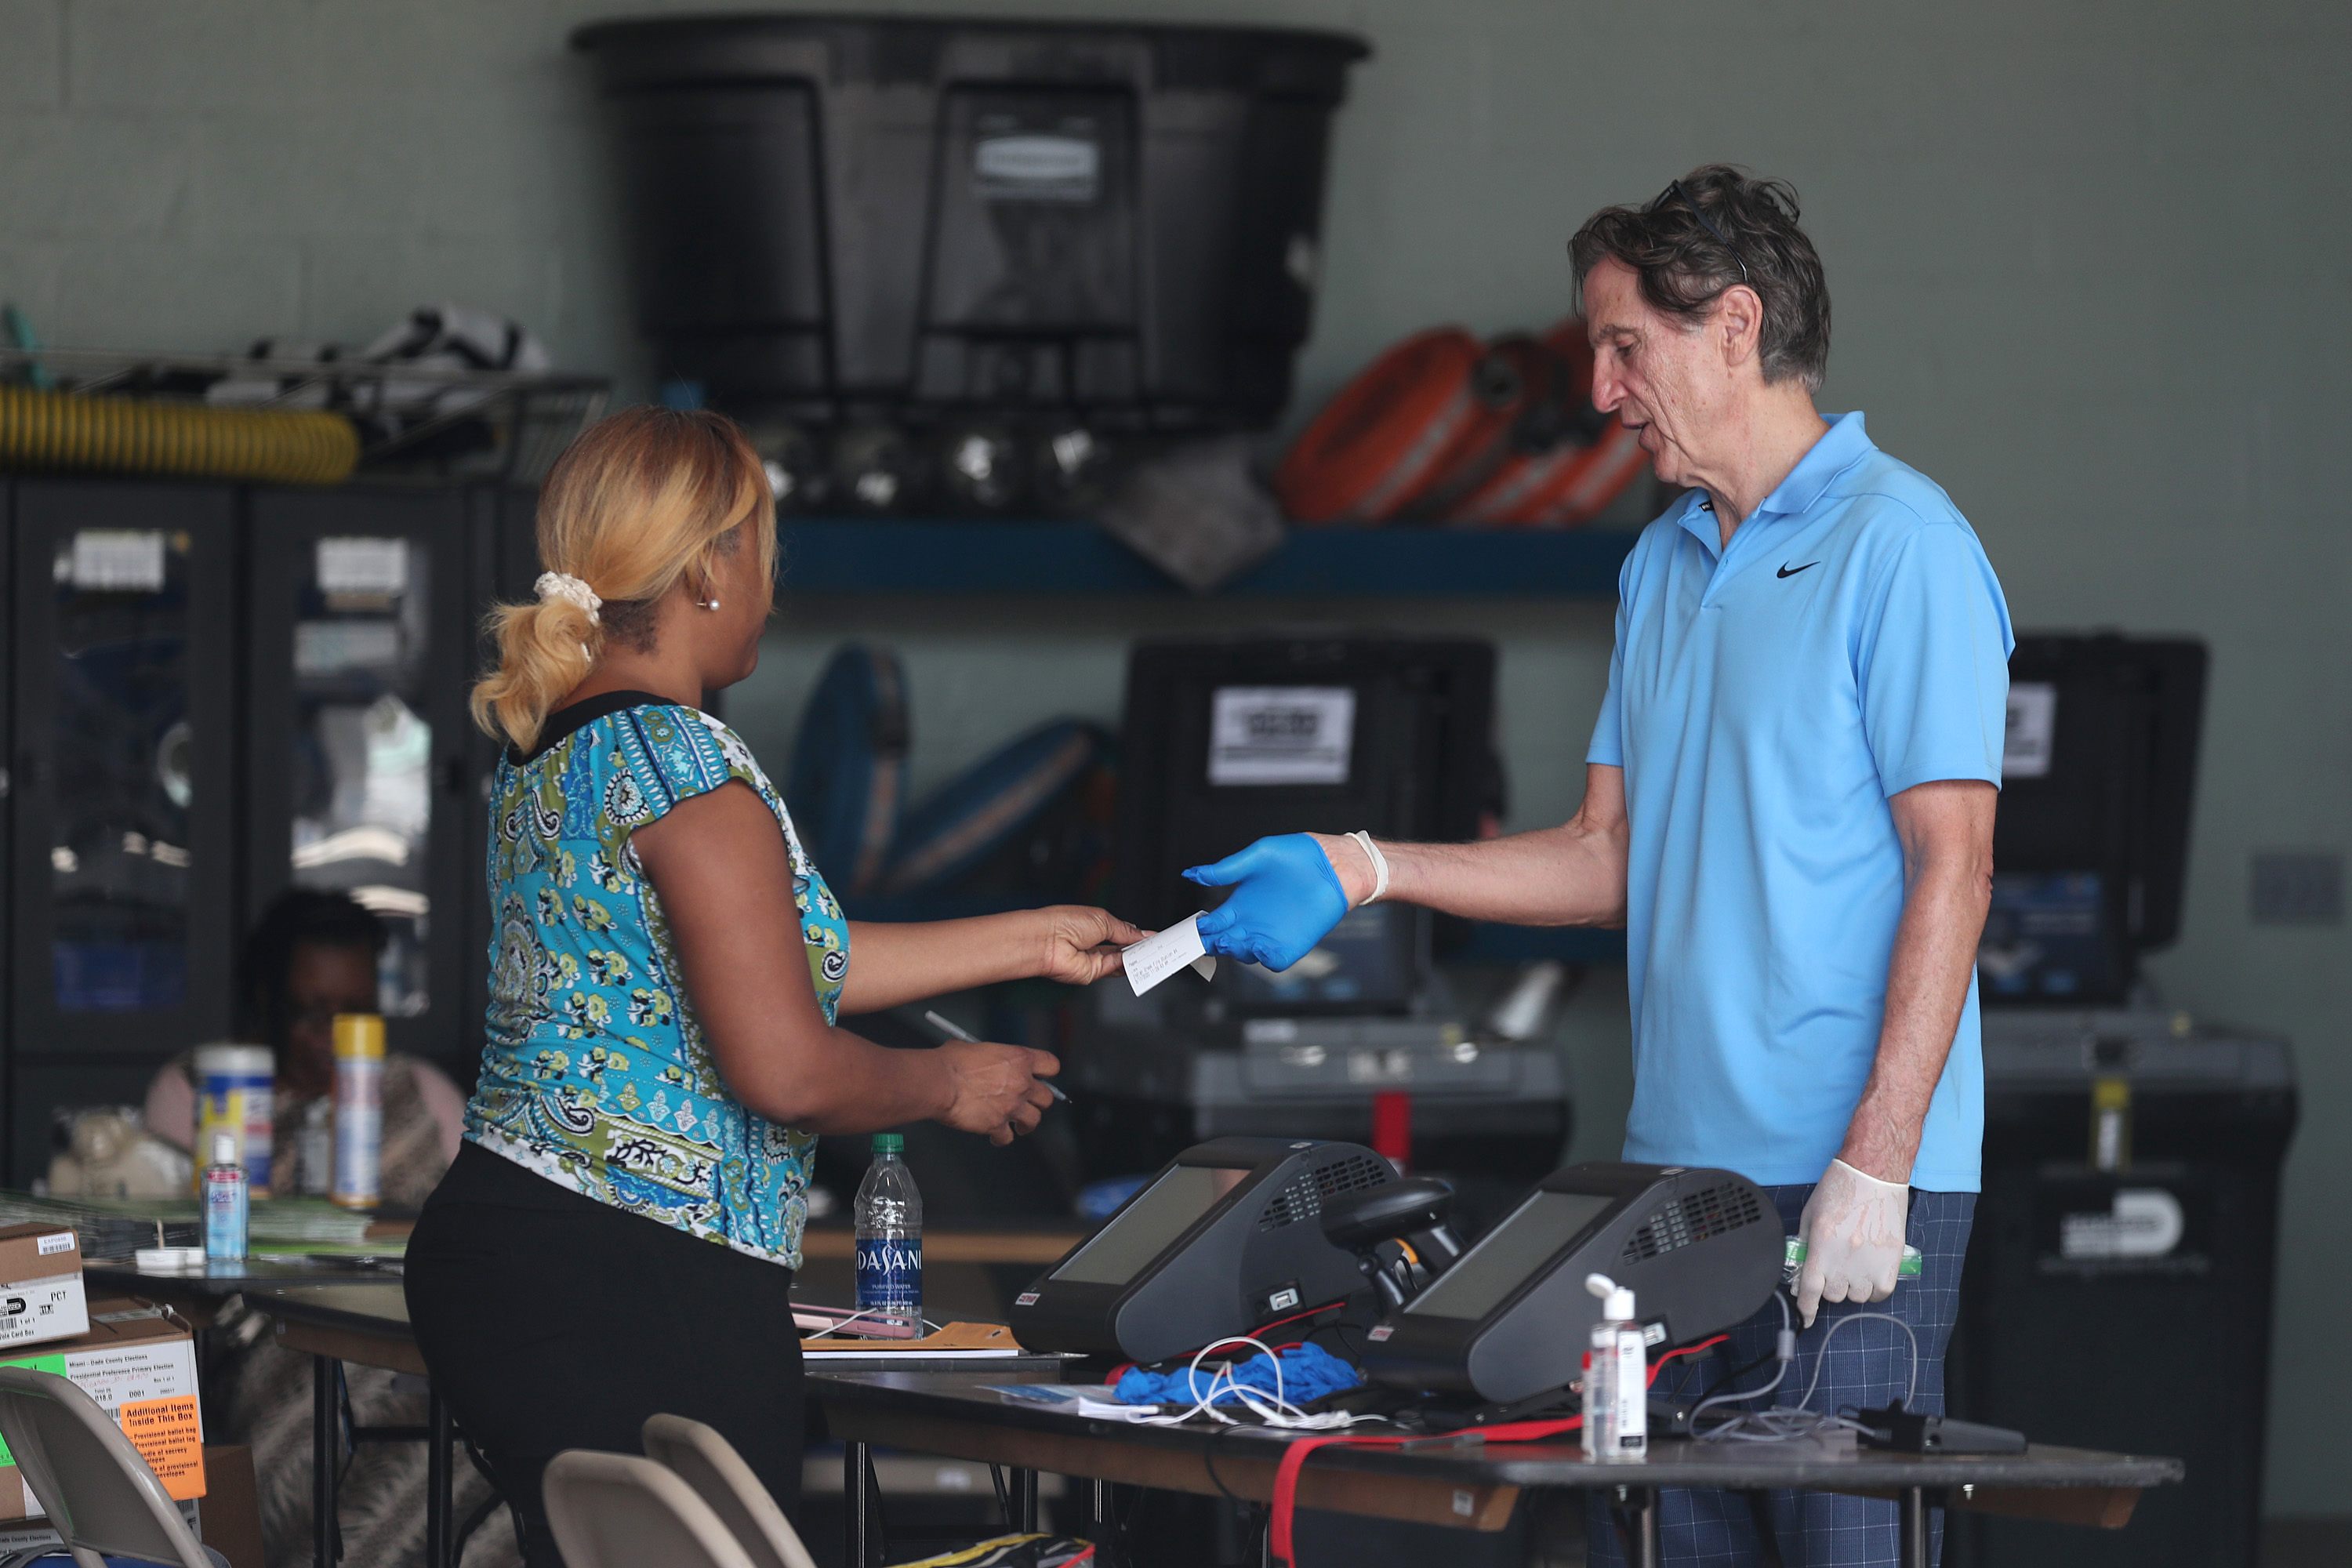 A poll worker checks in George Hanley, who is wearing protective gloves, as he prepares to cast a ballot in his precinct setup in Miami Beach Fire Station 4 during the Florida presidential primary as the coronavirus pandemic continues on March 17, 2020 in Miami Beach, Florida. (Joe Raedle/Getty Images)